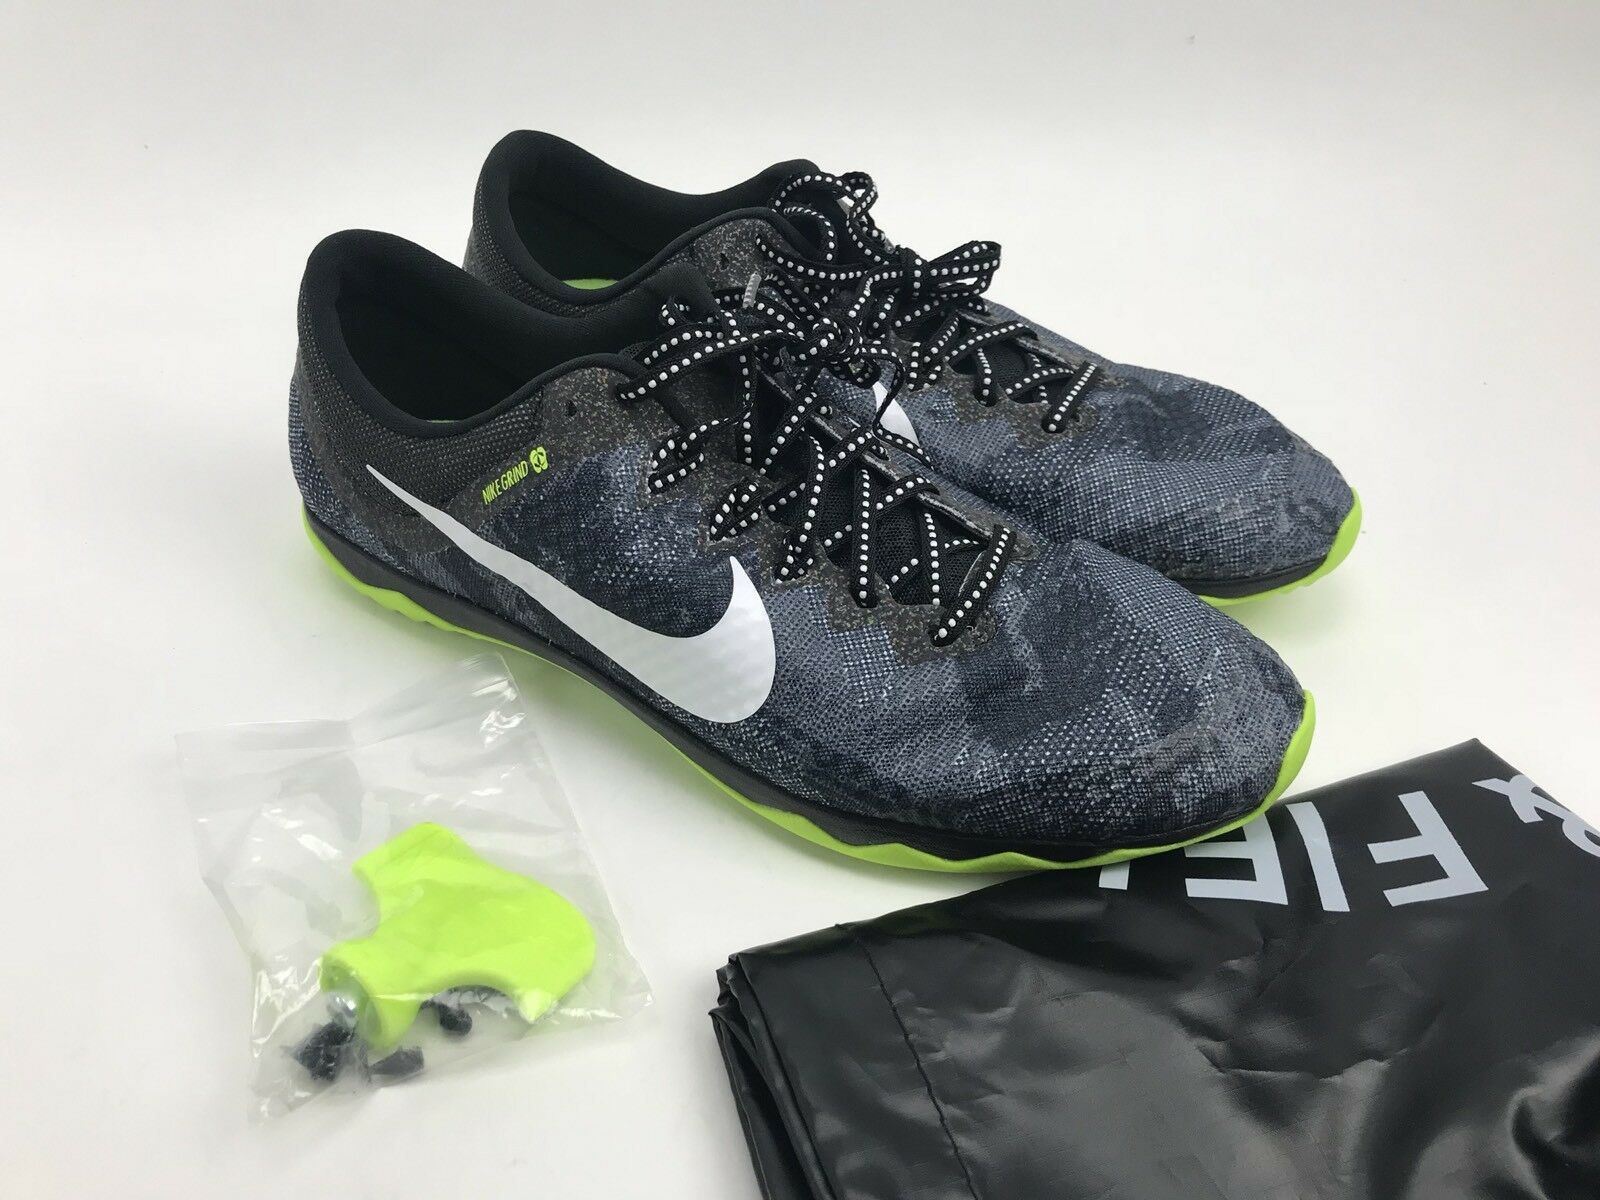 New NIKE Zoom Rival XC Mens Track Sprint Running Spike Shoes 749349-017 Comfortable New shoes for men and women, limited time discount